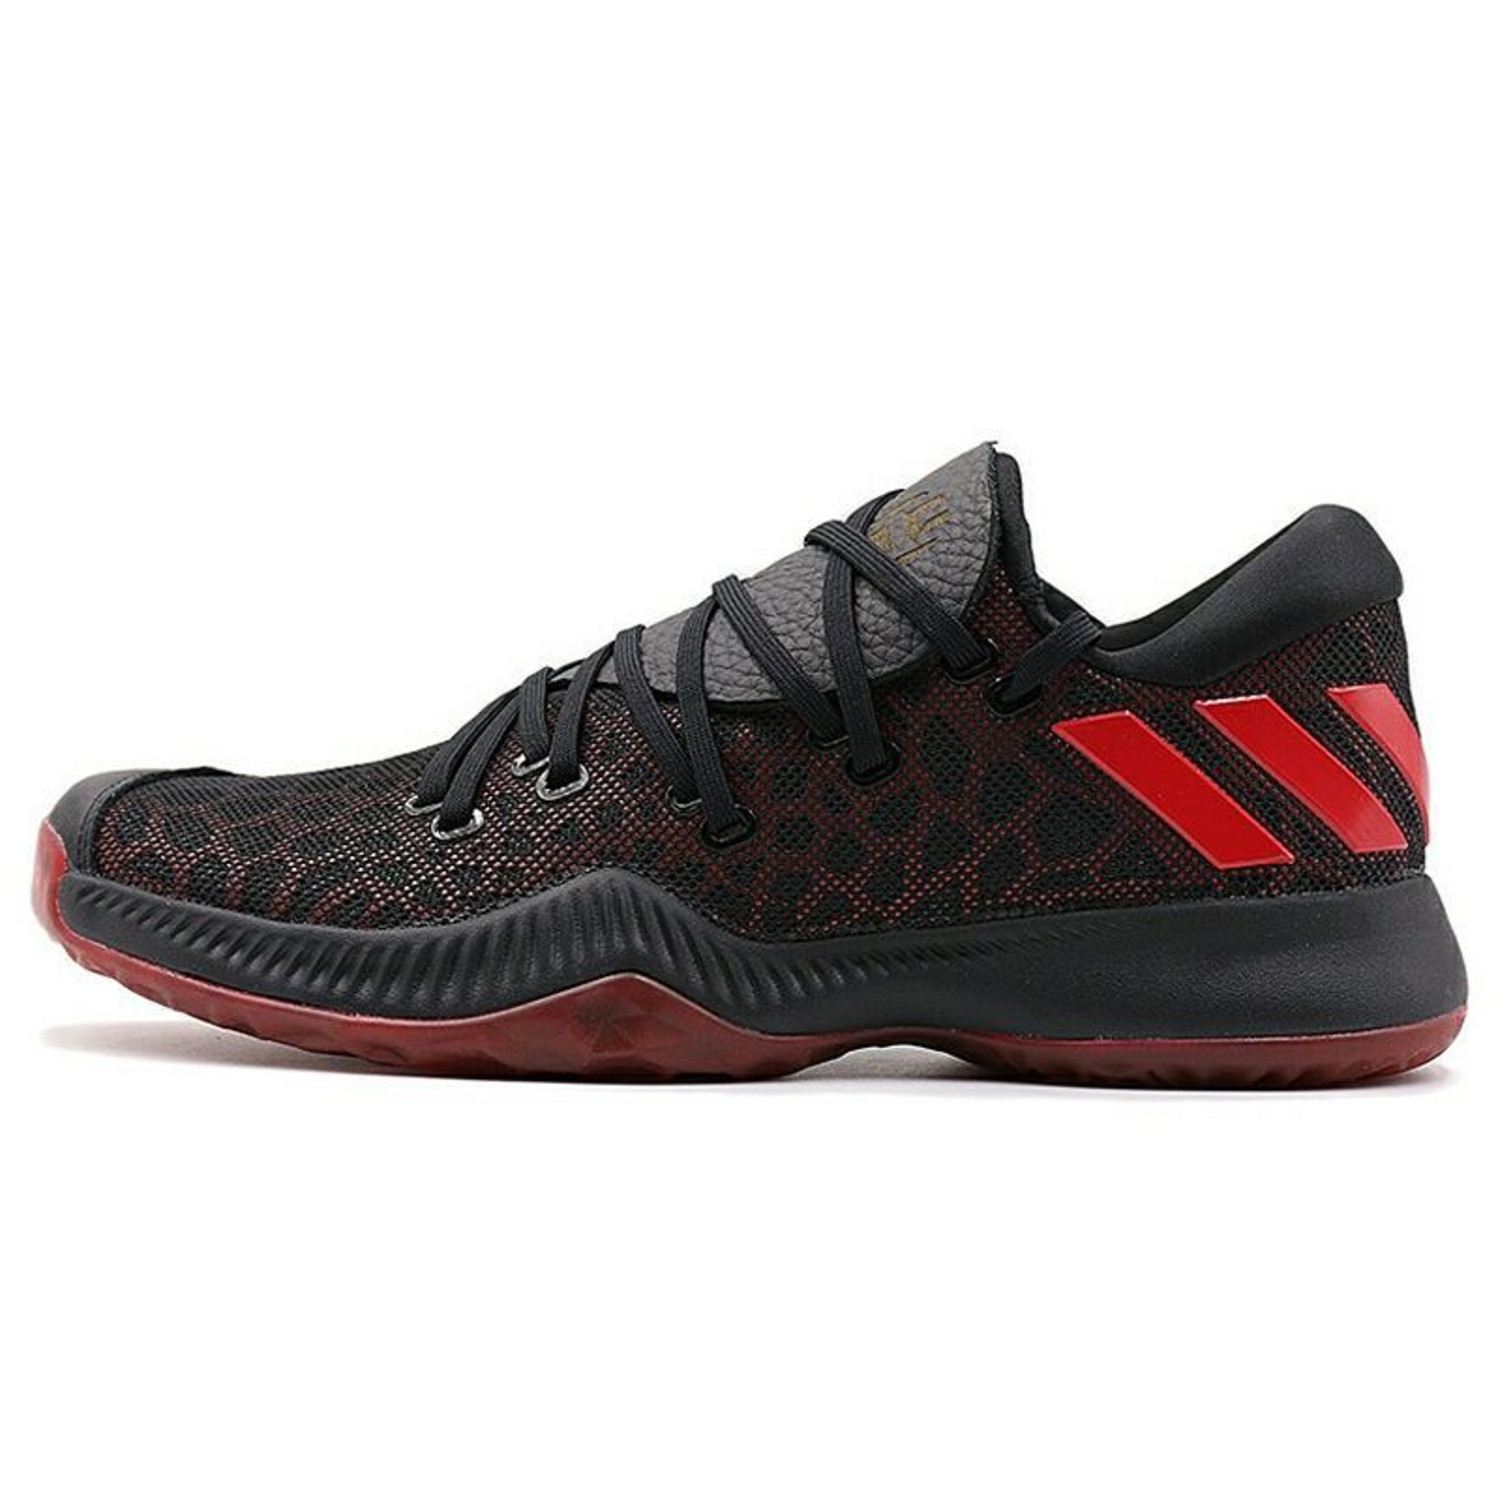 adidas harden be black red 2